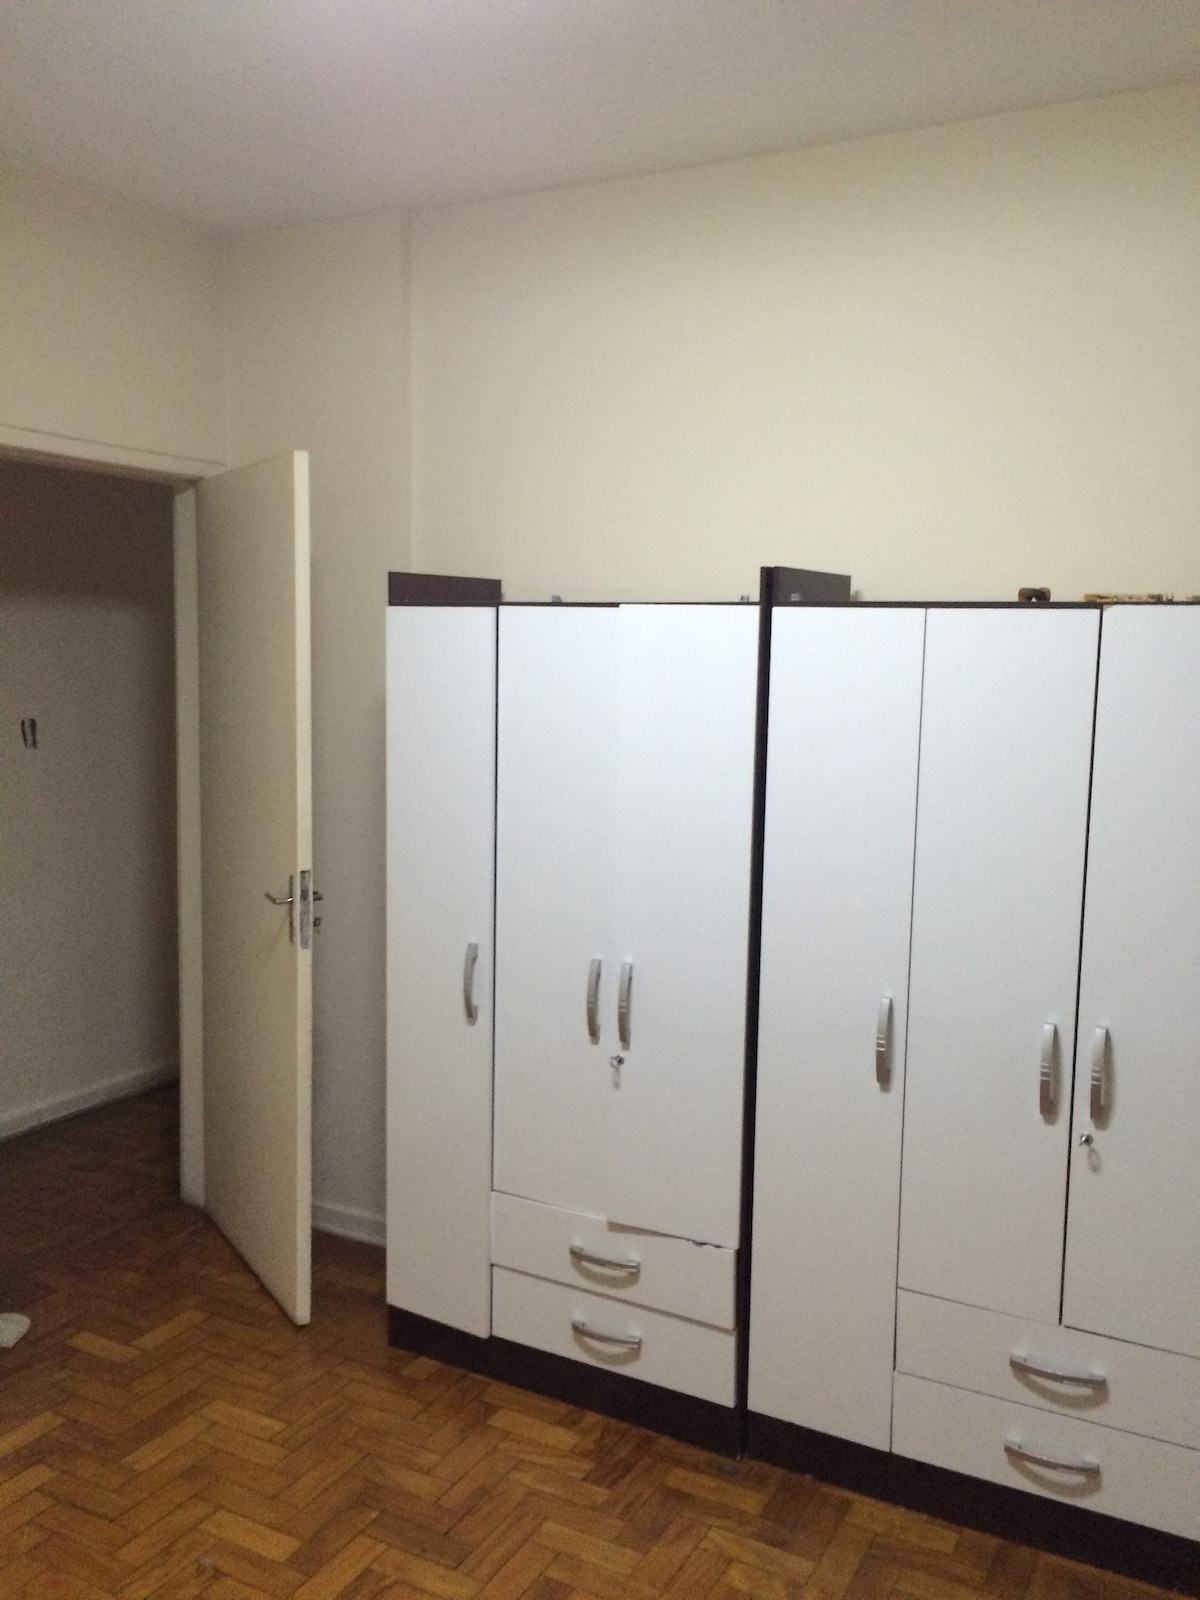 Well located, fully-furnished room